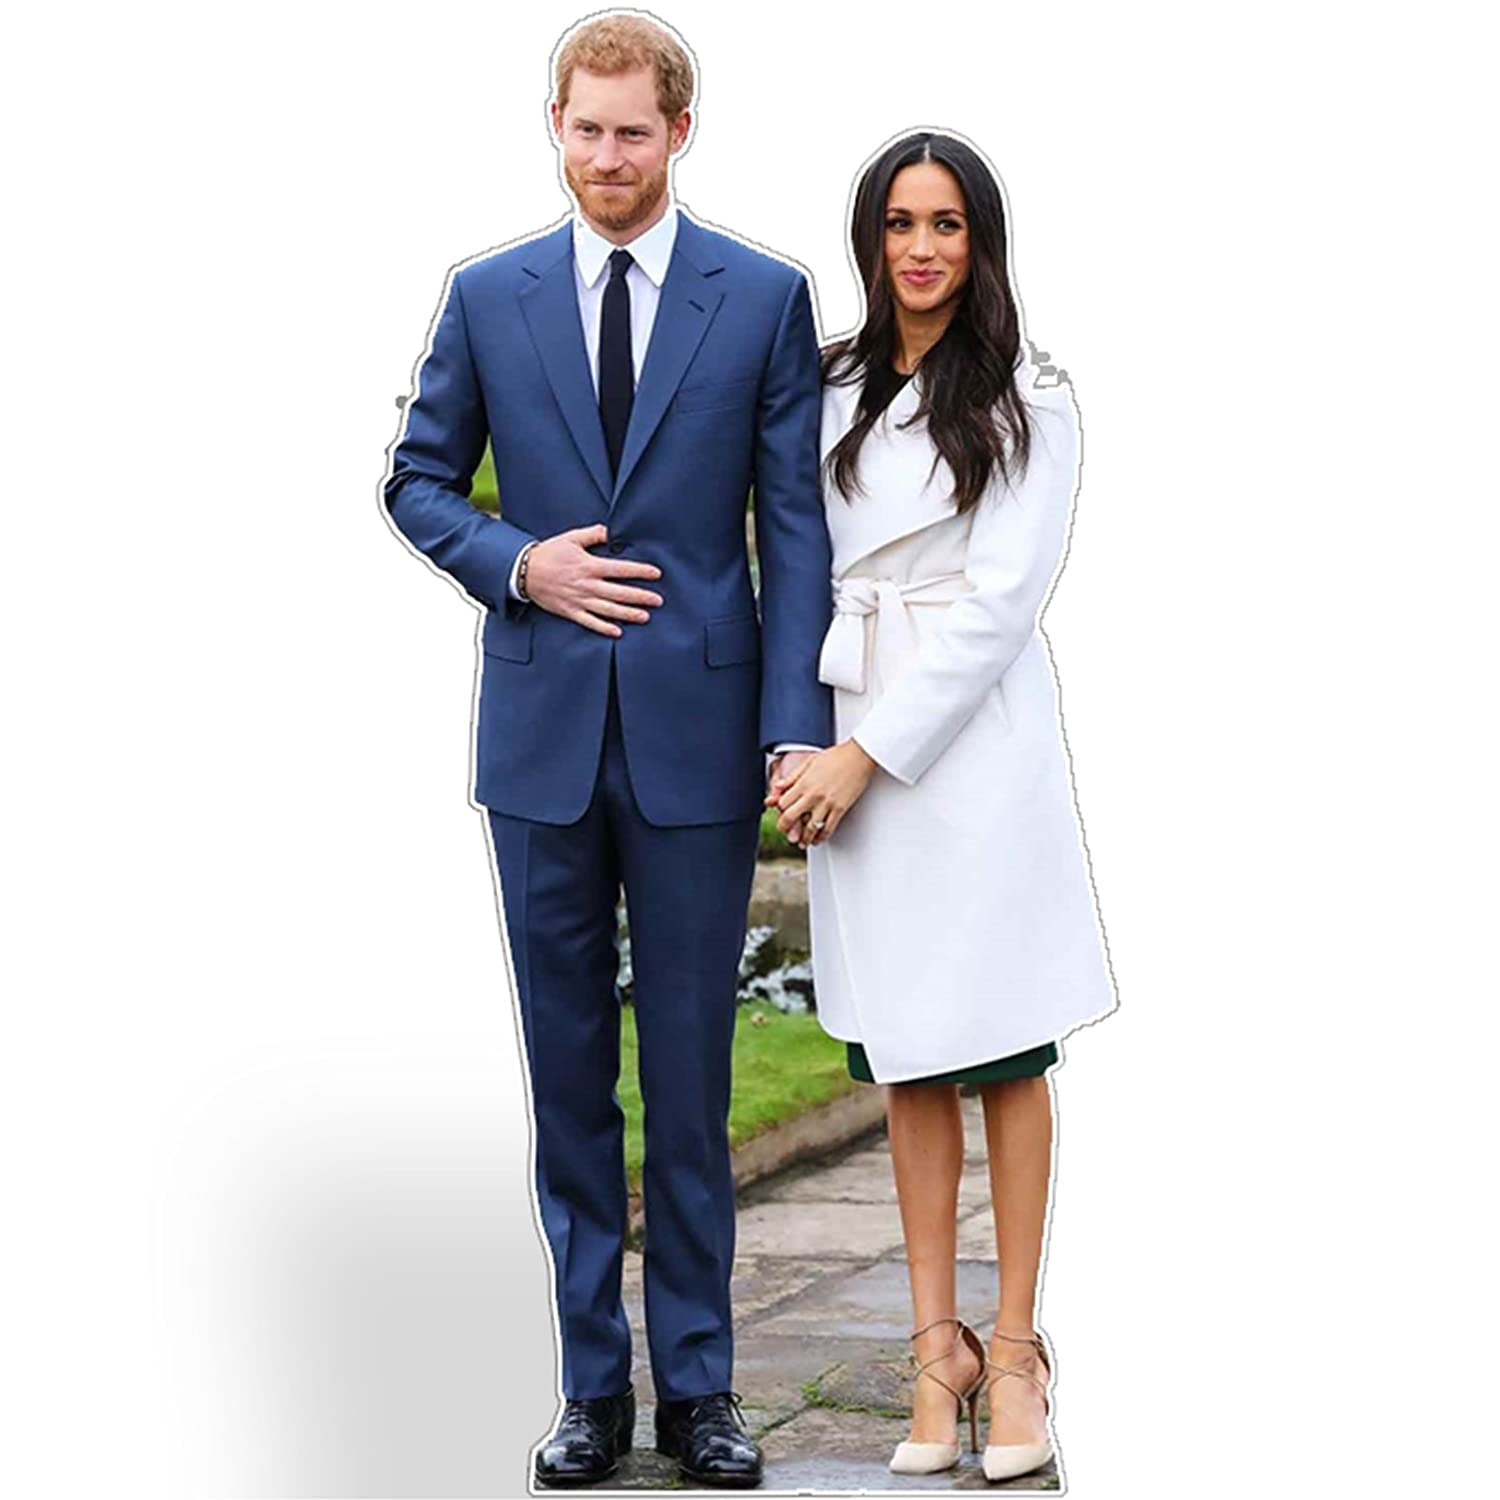 Star Cutouts sagoma di bordo mini Cut out of Prince Harry e Meghan Markle, cartone,, 186 x 92 x 186 cm STAR CUTOUTS LTD SC1115